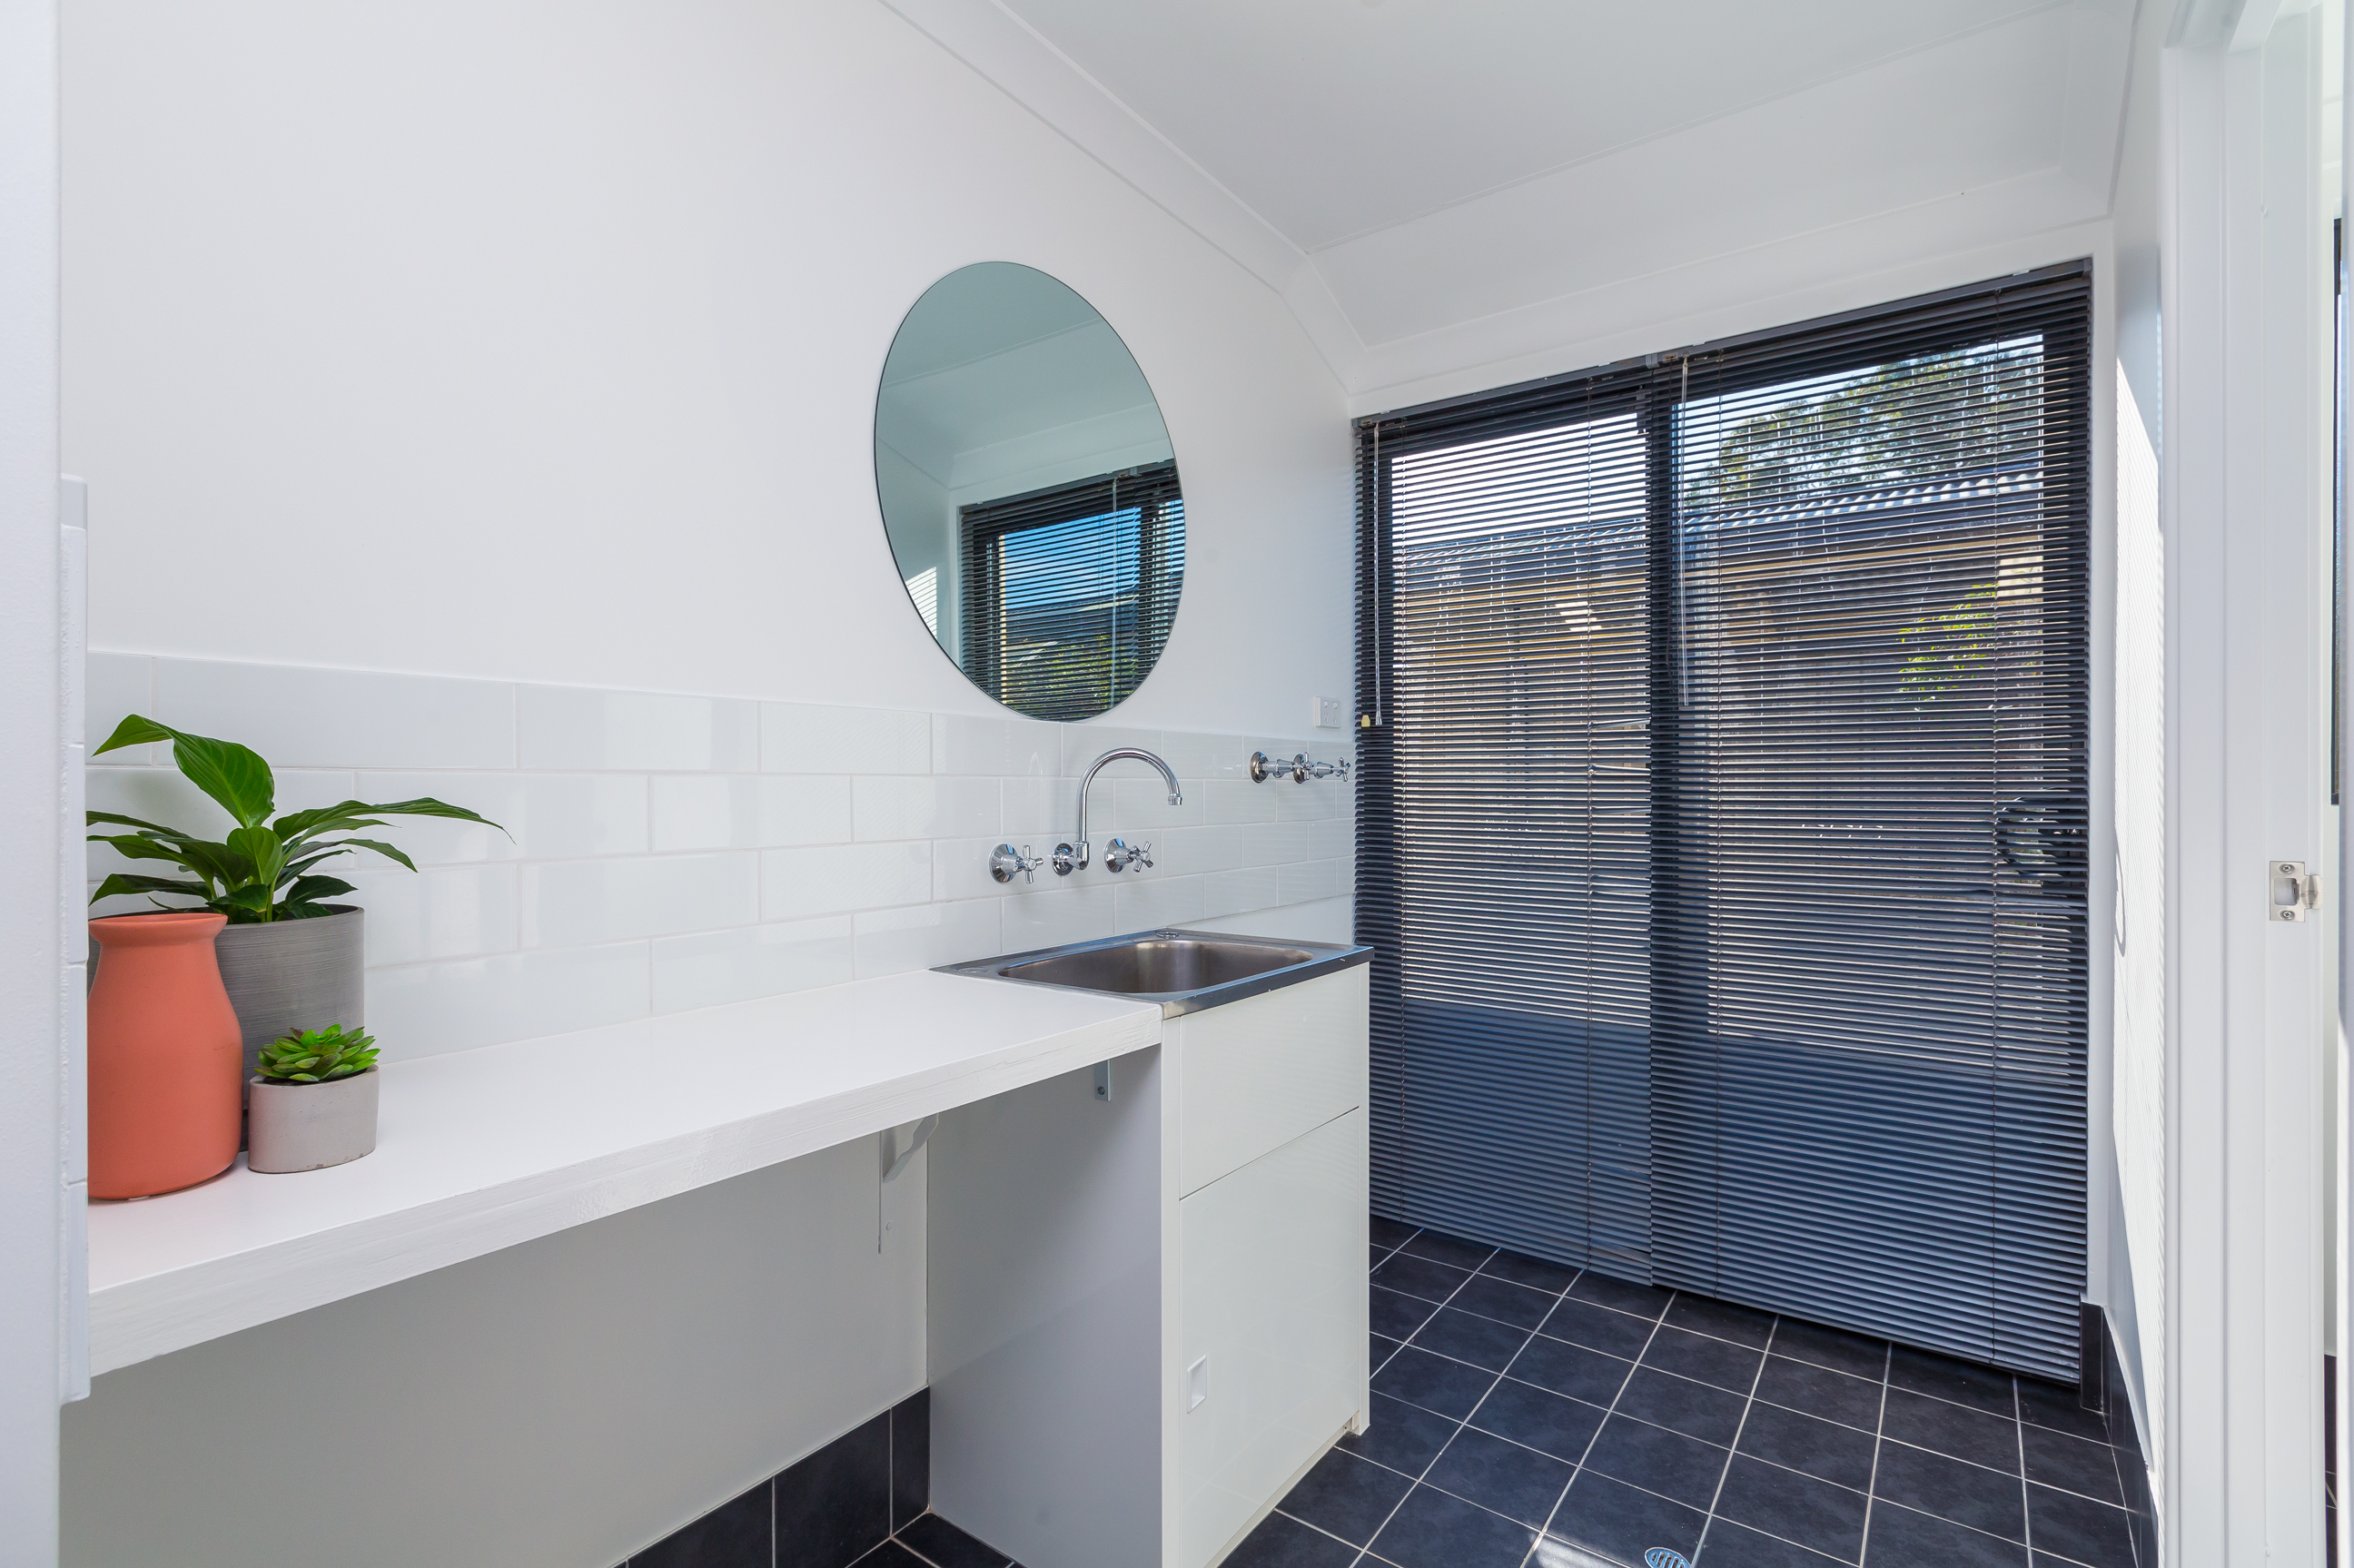 Property for sale in BYFORD, 51 Diamantina Blvd : Attree Real Estate